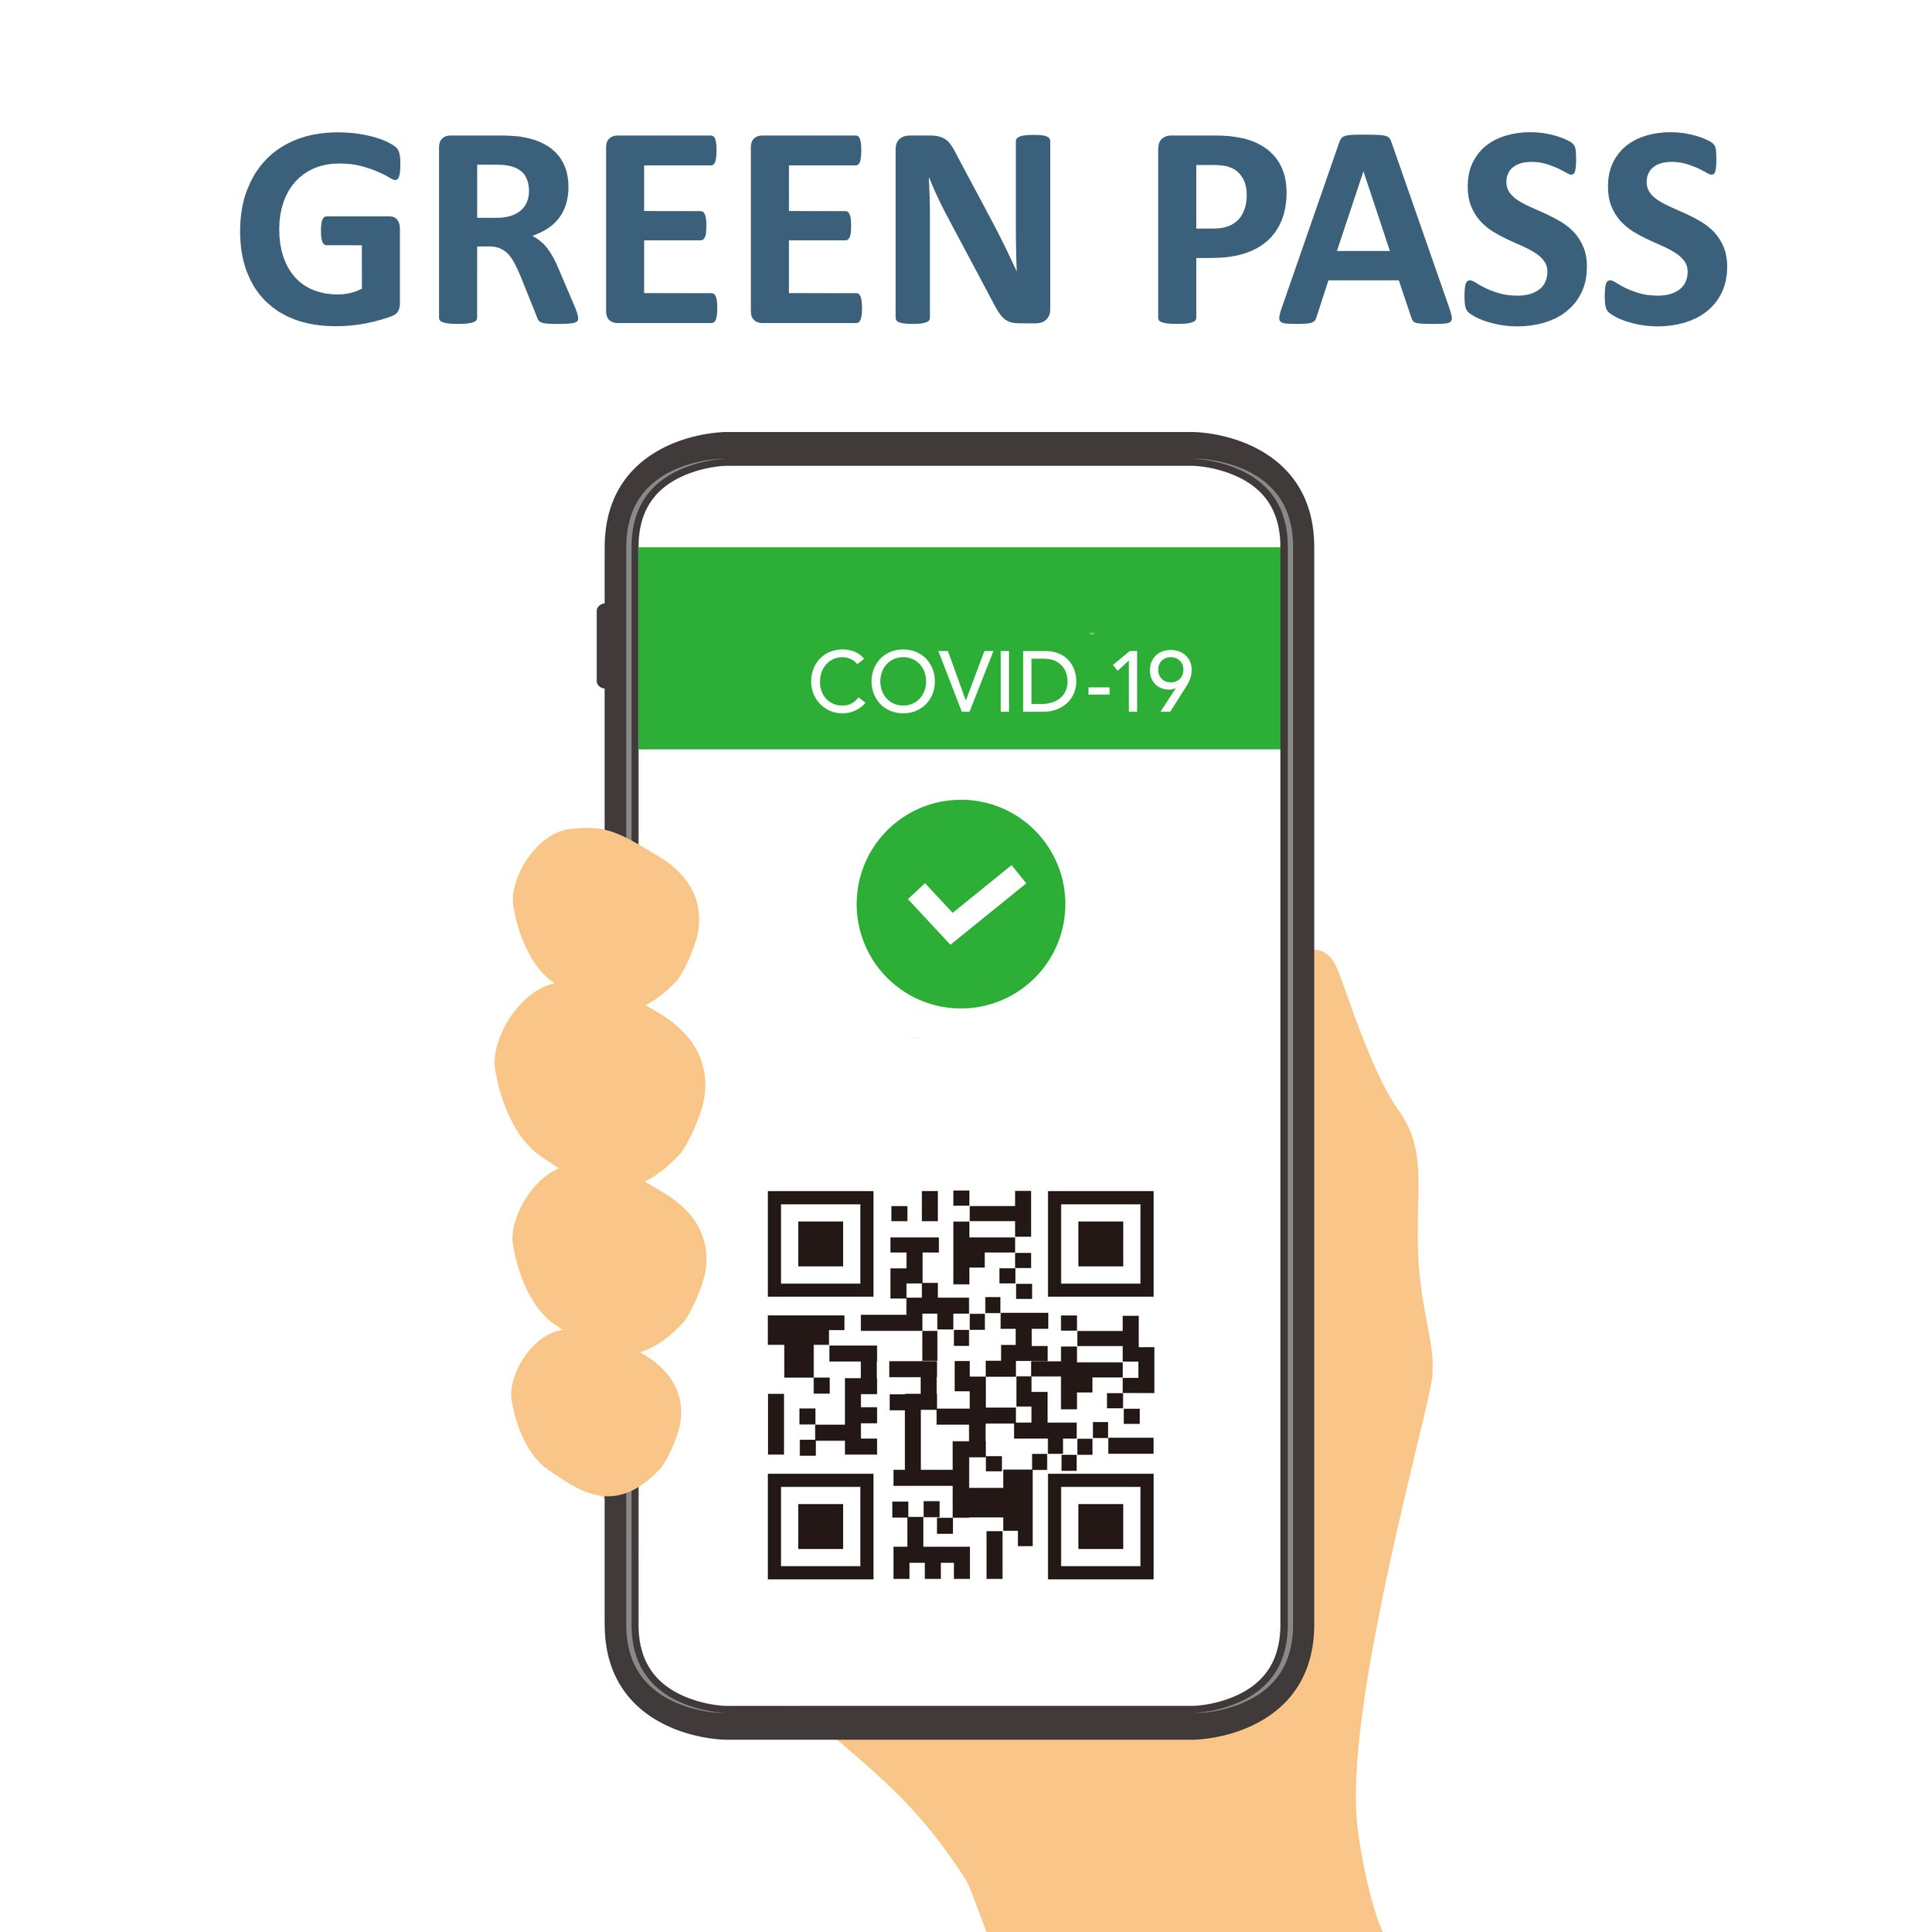 INGRESSO MUSEO CON GREEN PASS